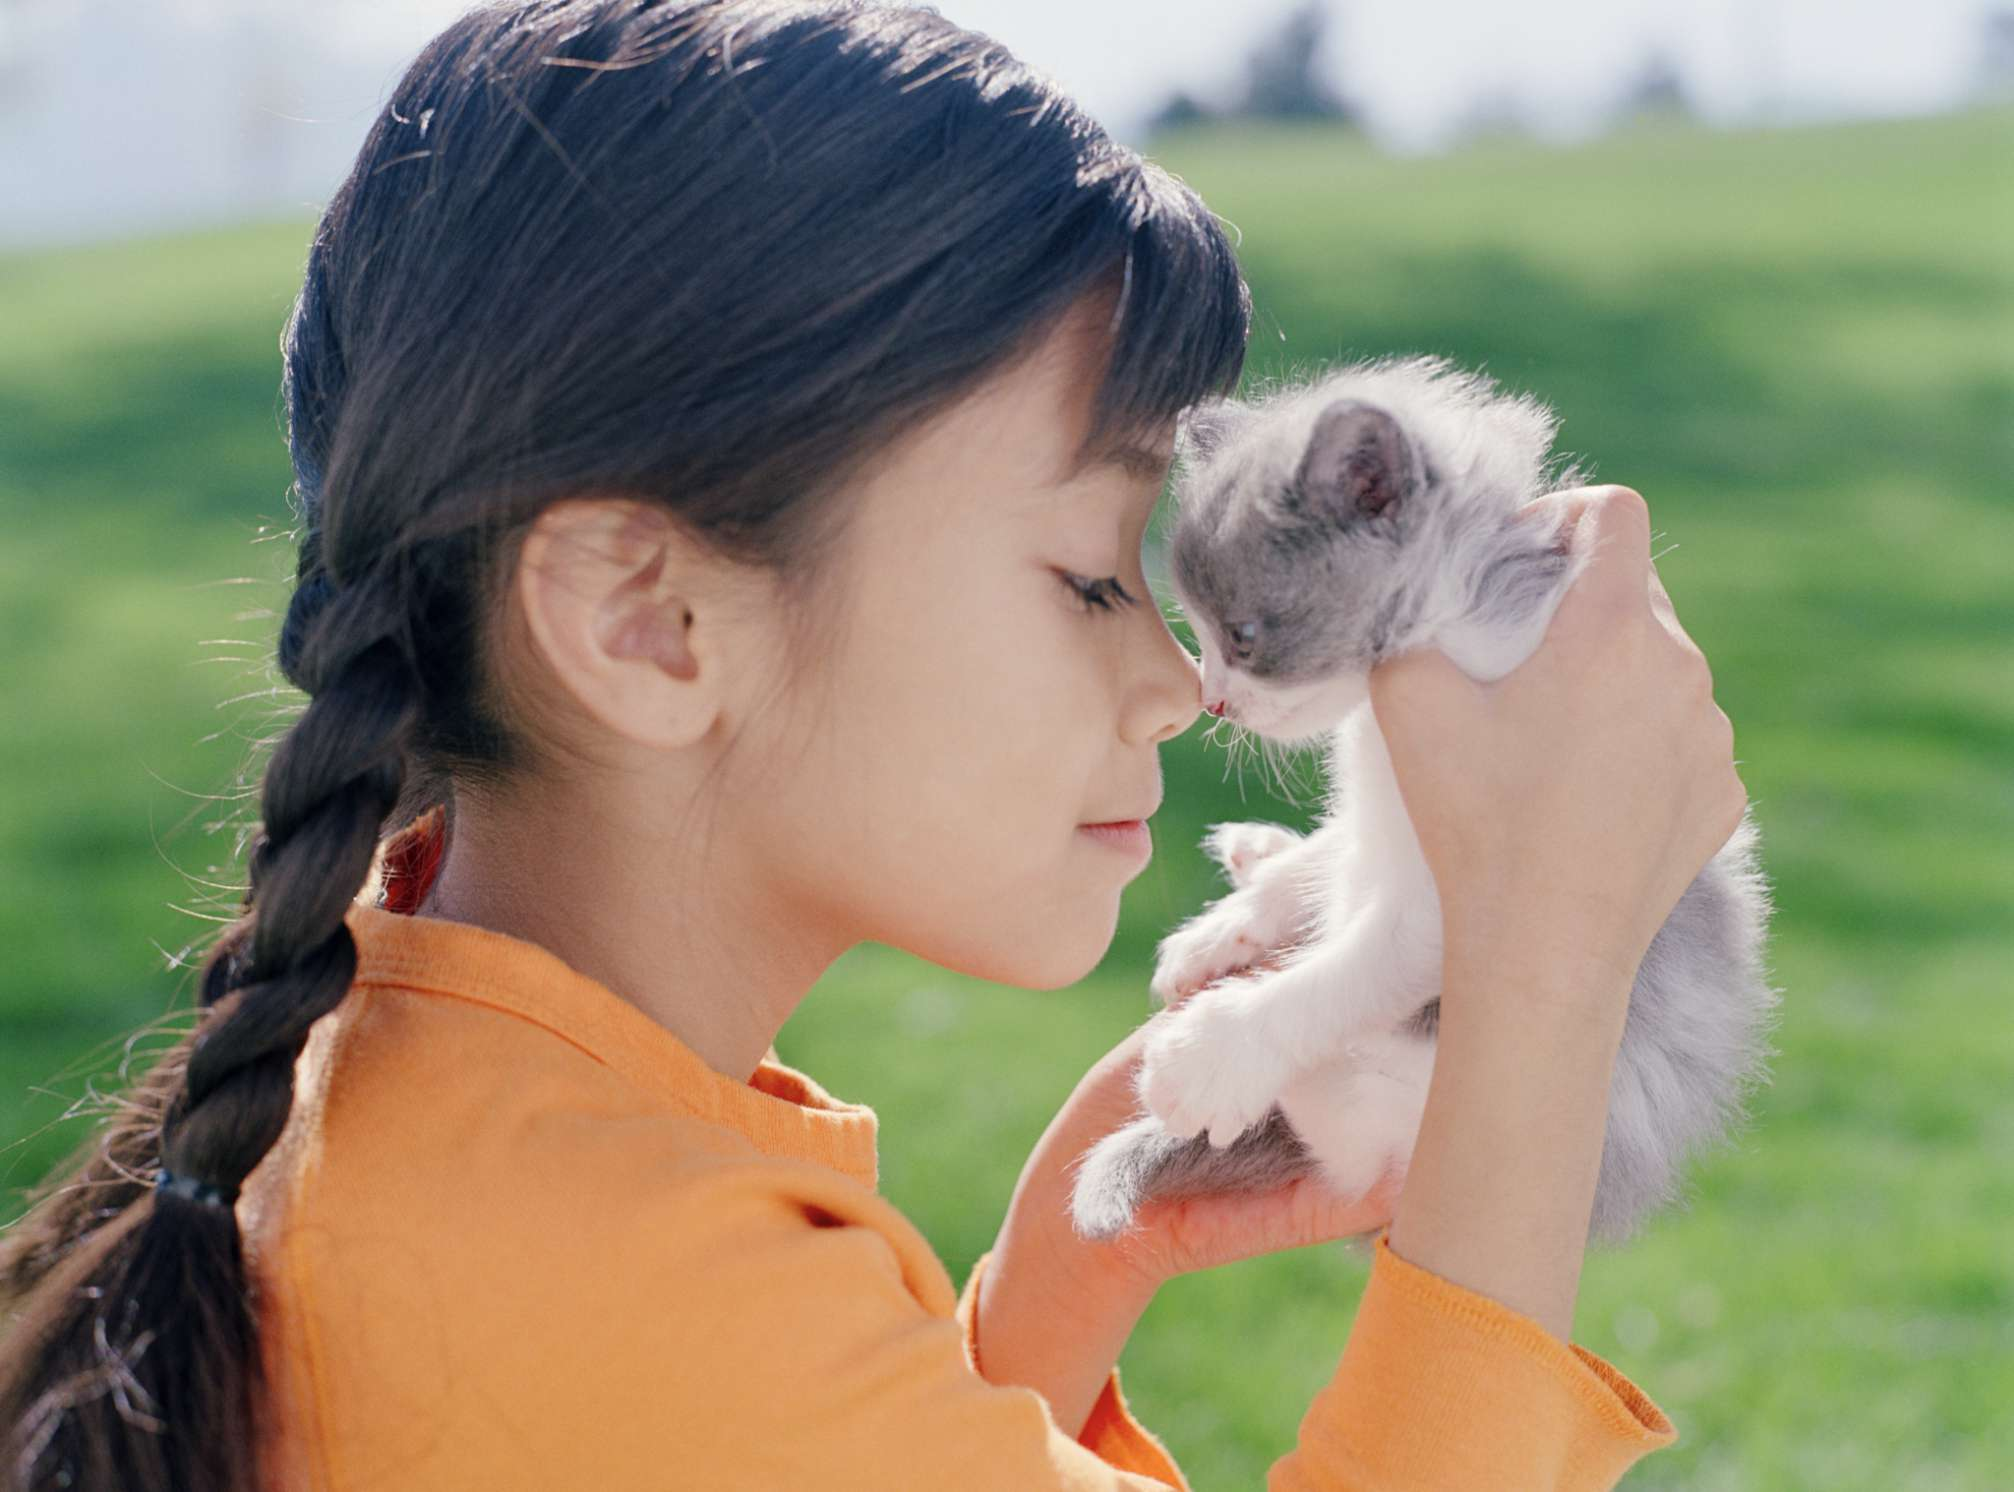 Girl with kitten held up